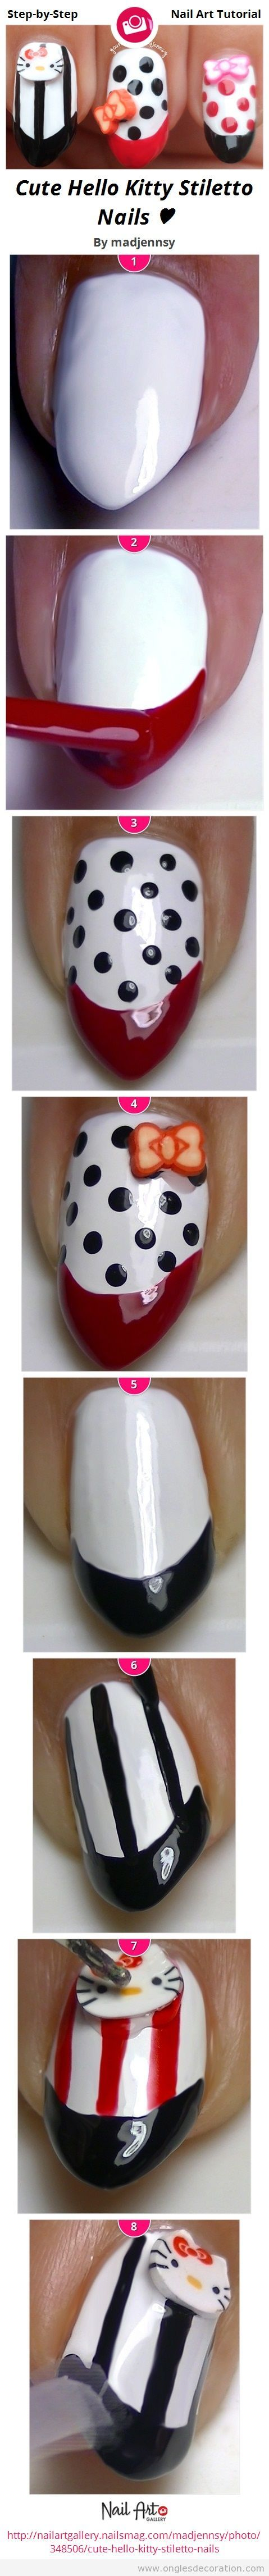 Tuto dessin ongles rayures et pois, Hello Kitty